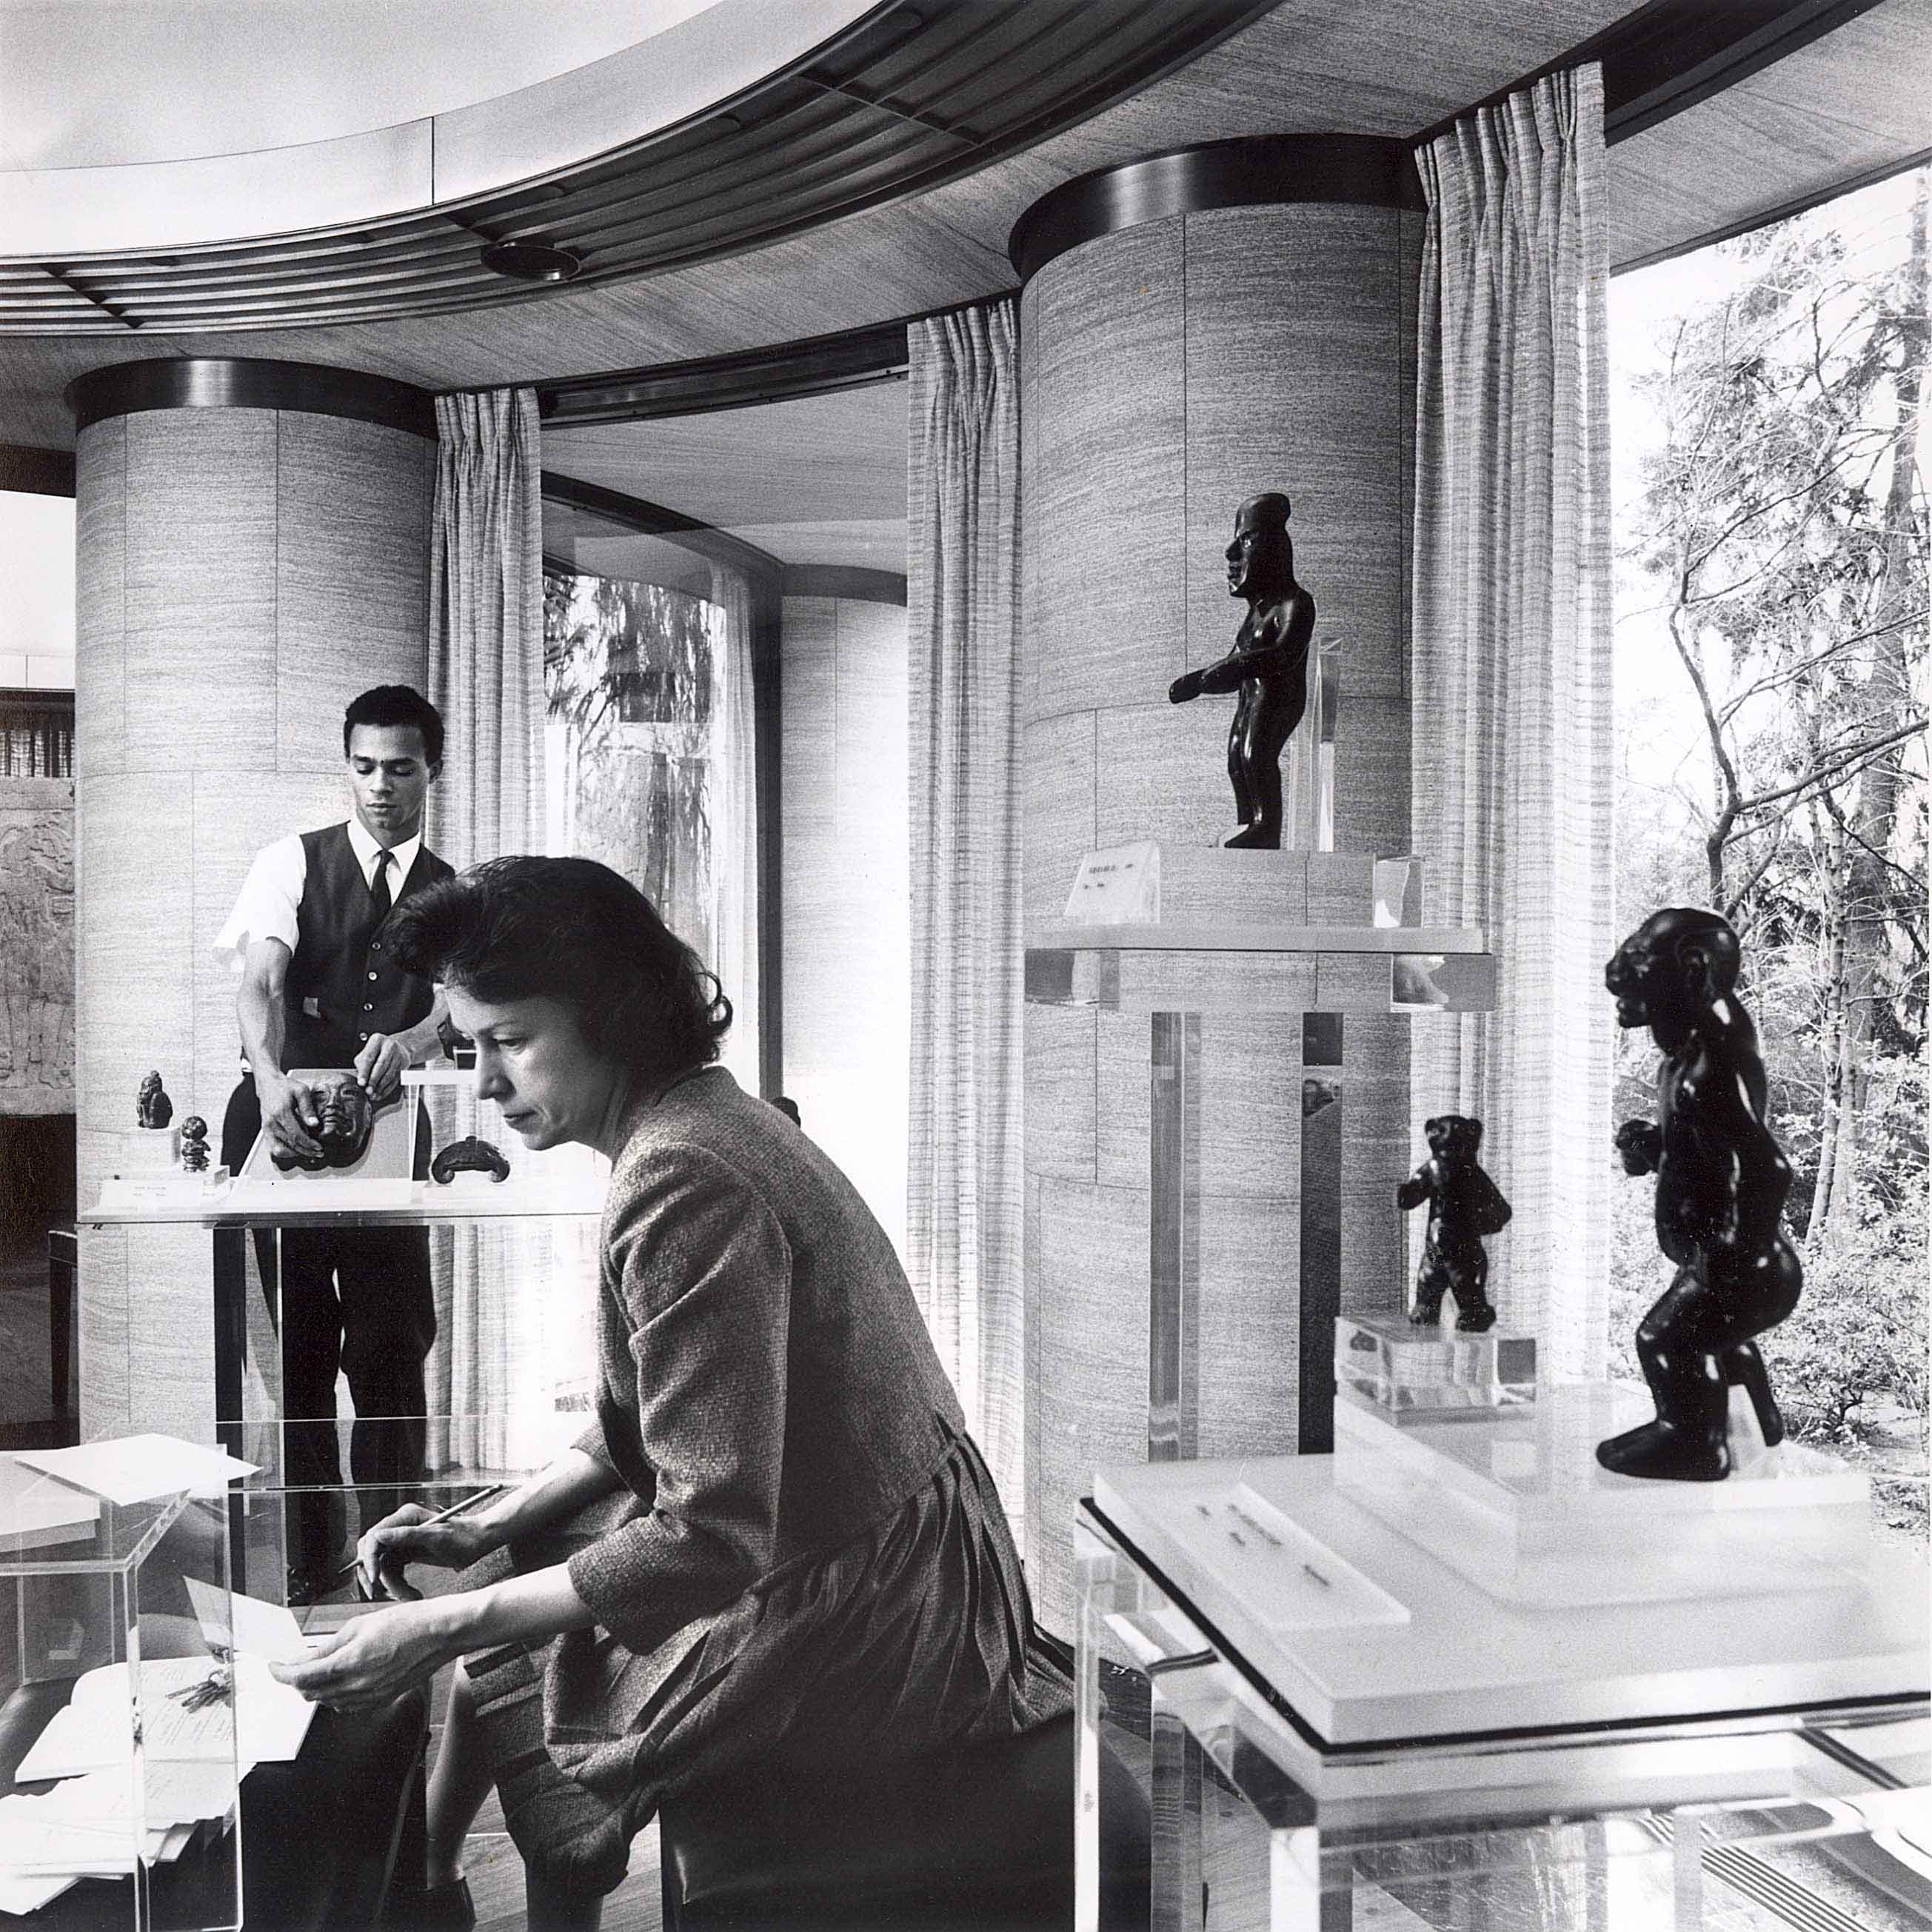 Elizabeth P. Benson and James Mayo, First Pre-Columbian Collection Installation, 1963